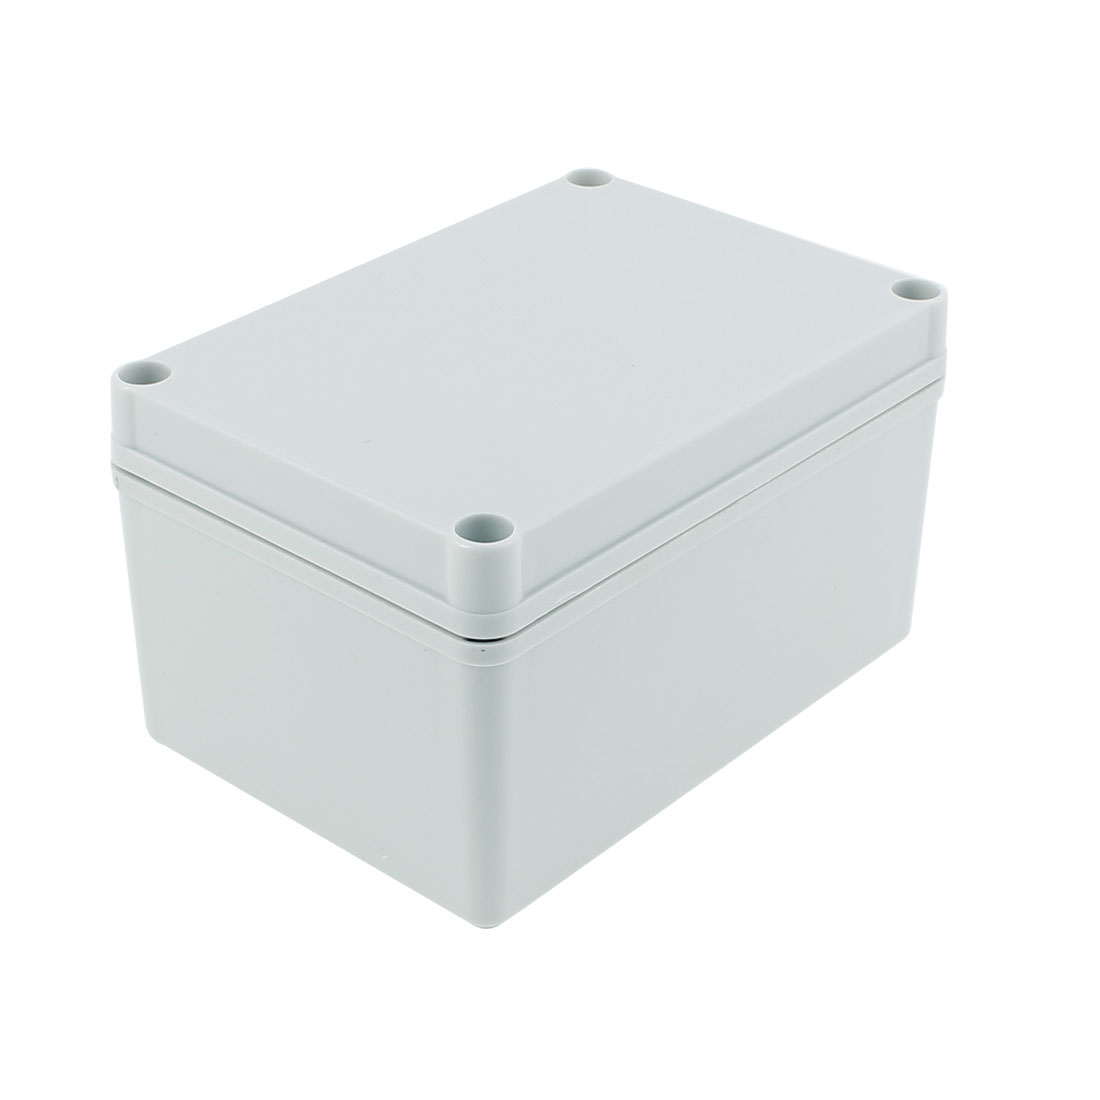 170 x 120 x 100mm Dustproof IP65 Junction Box Terminal Connection Box Enclosure